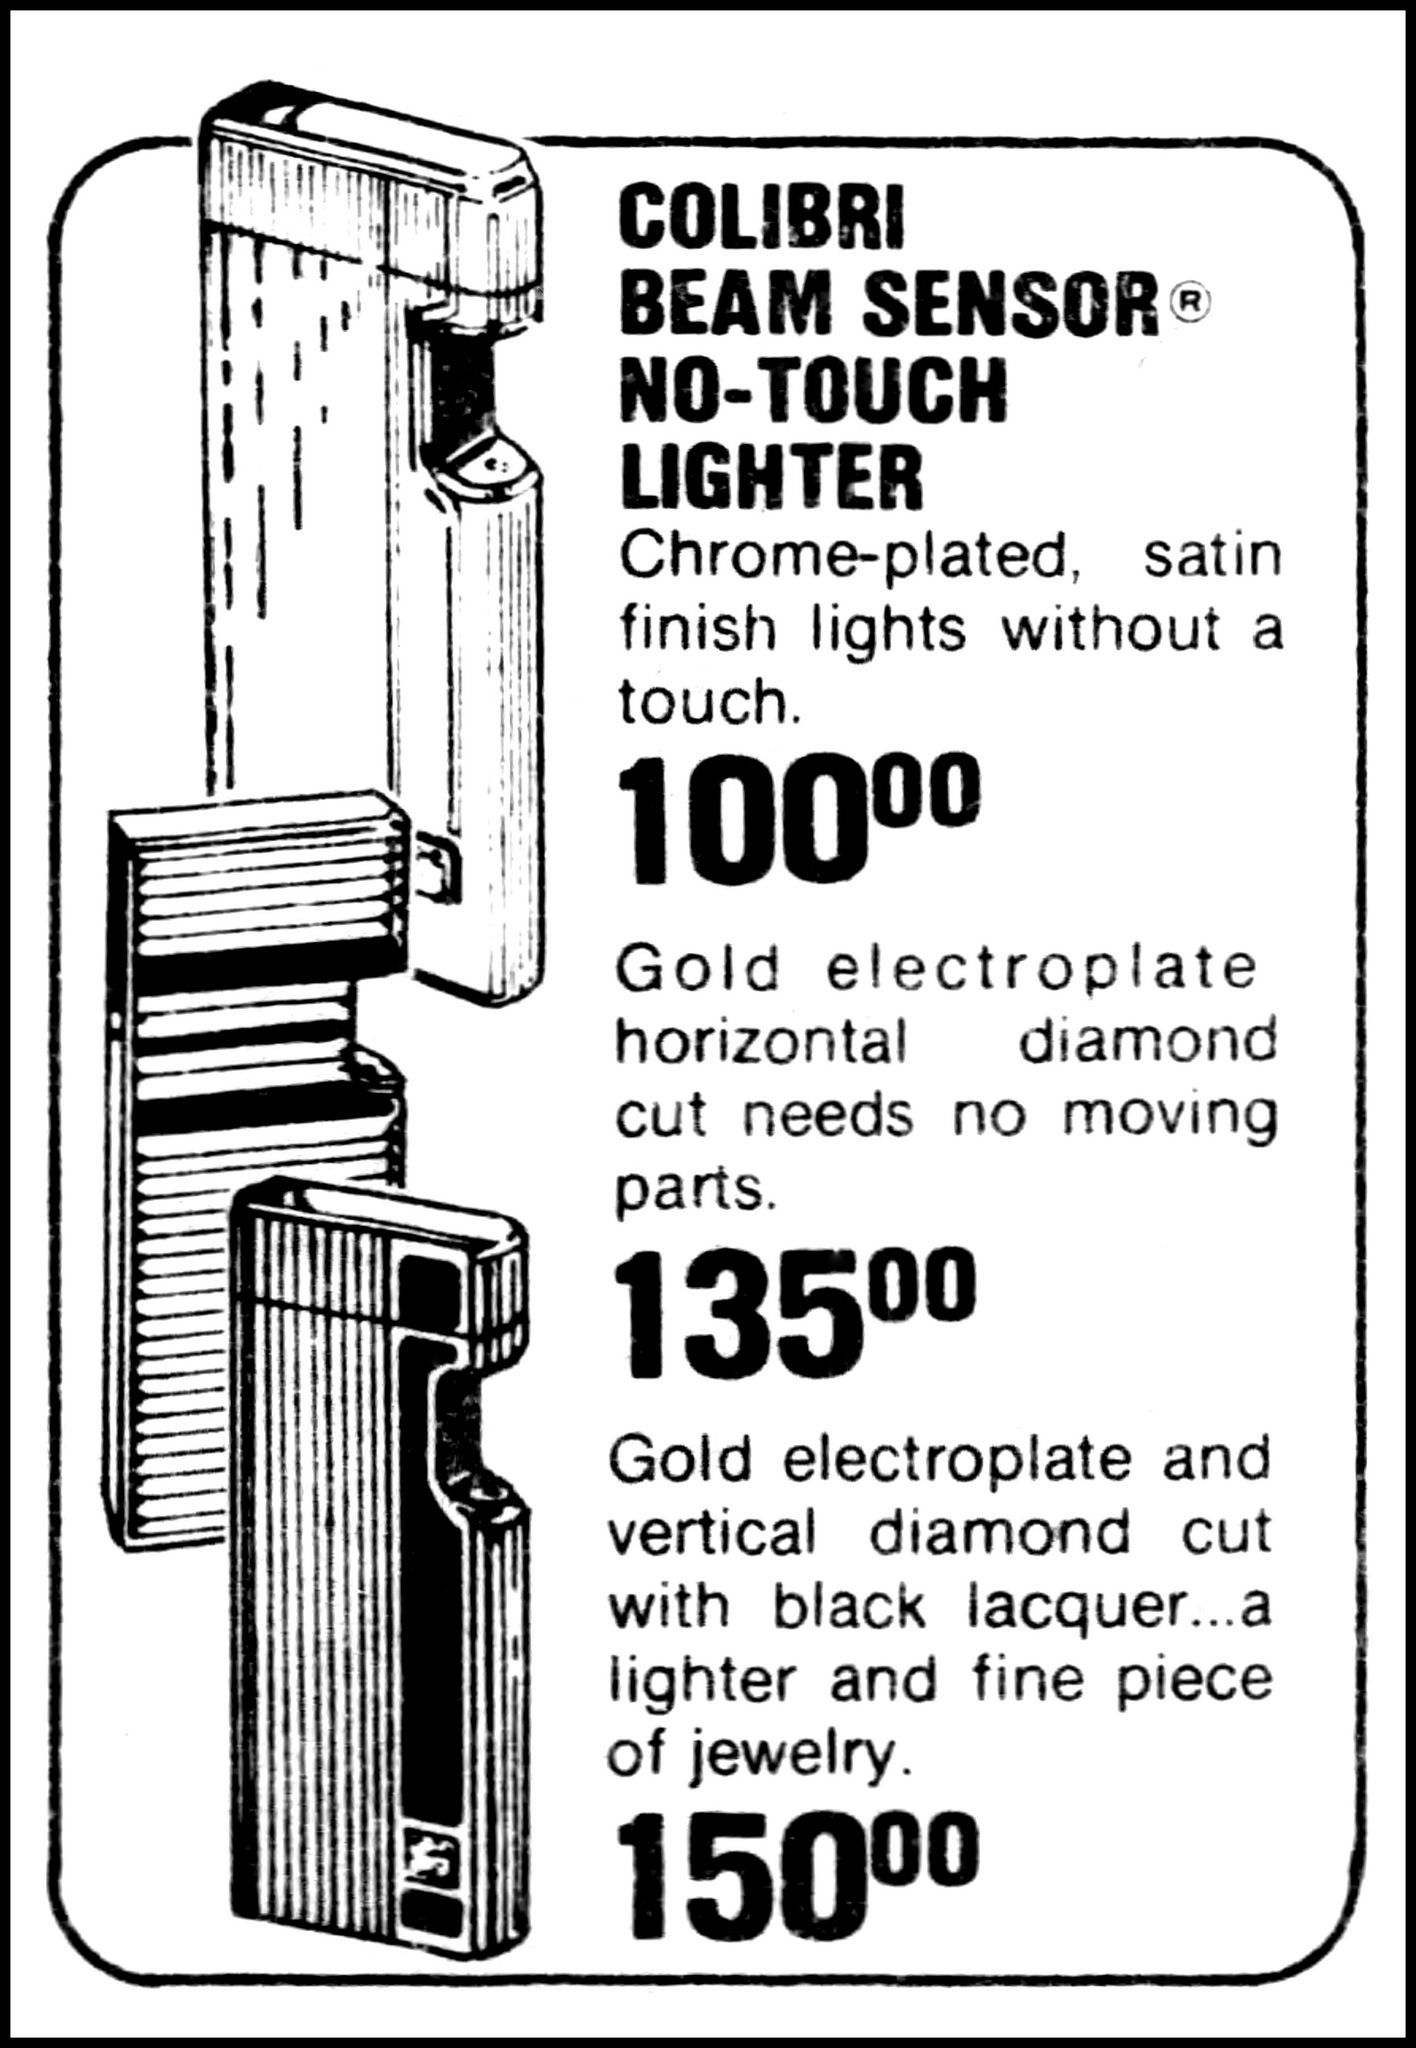 Vintage Advertising For The Colibri Beam Sensor No-Touch